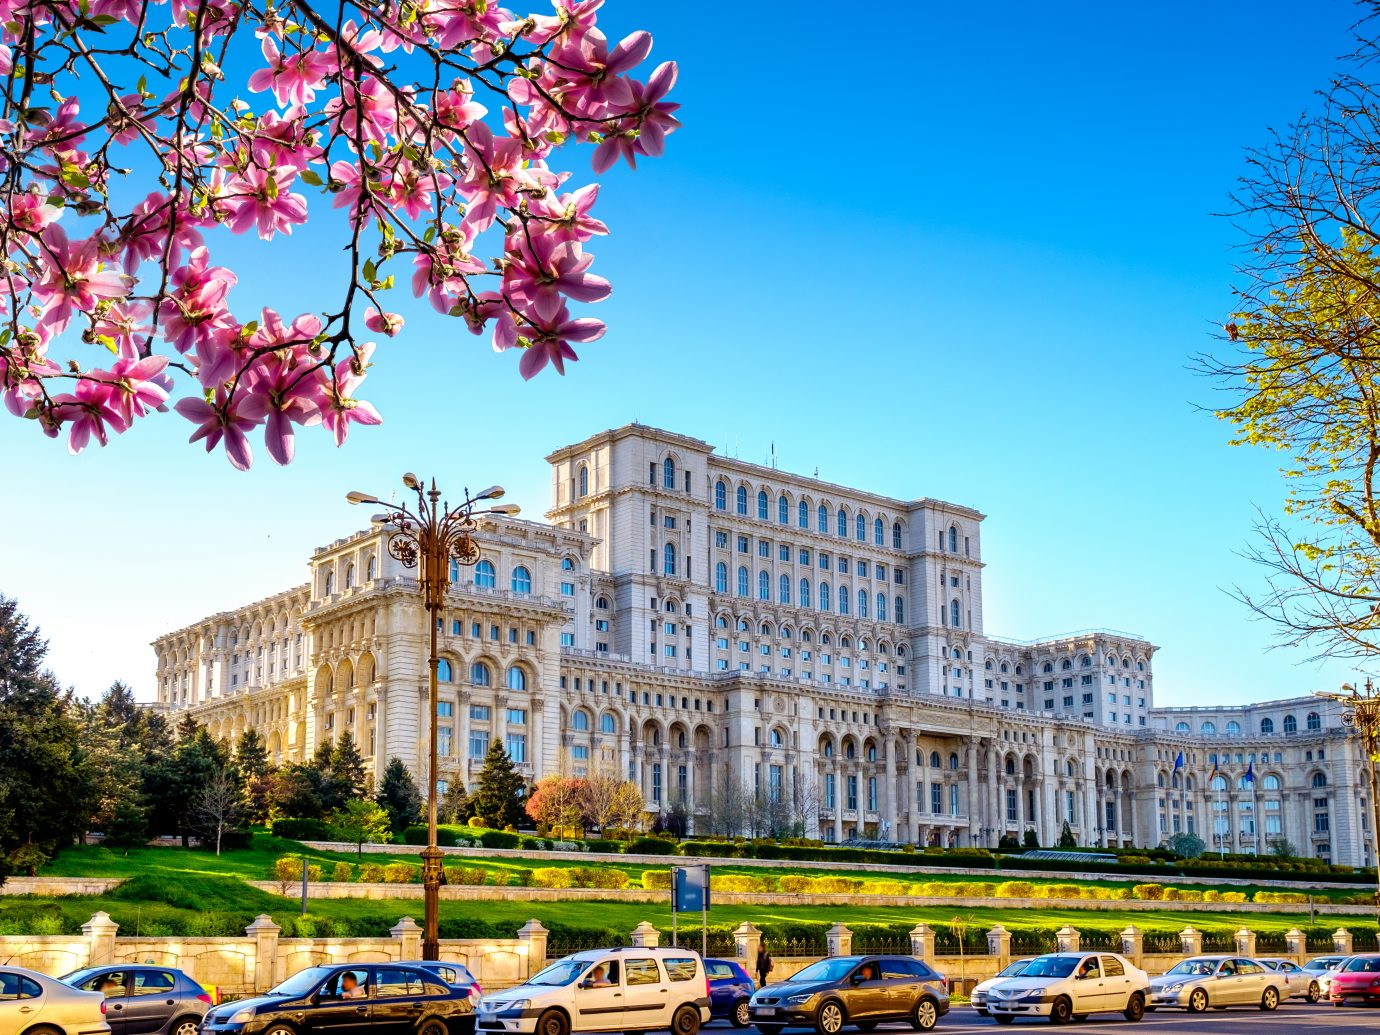 Spring near the the Palace of Parliament in Bucharest, Romania